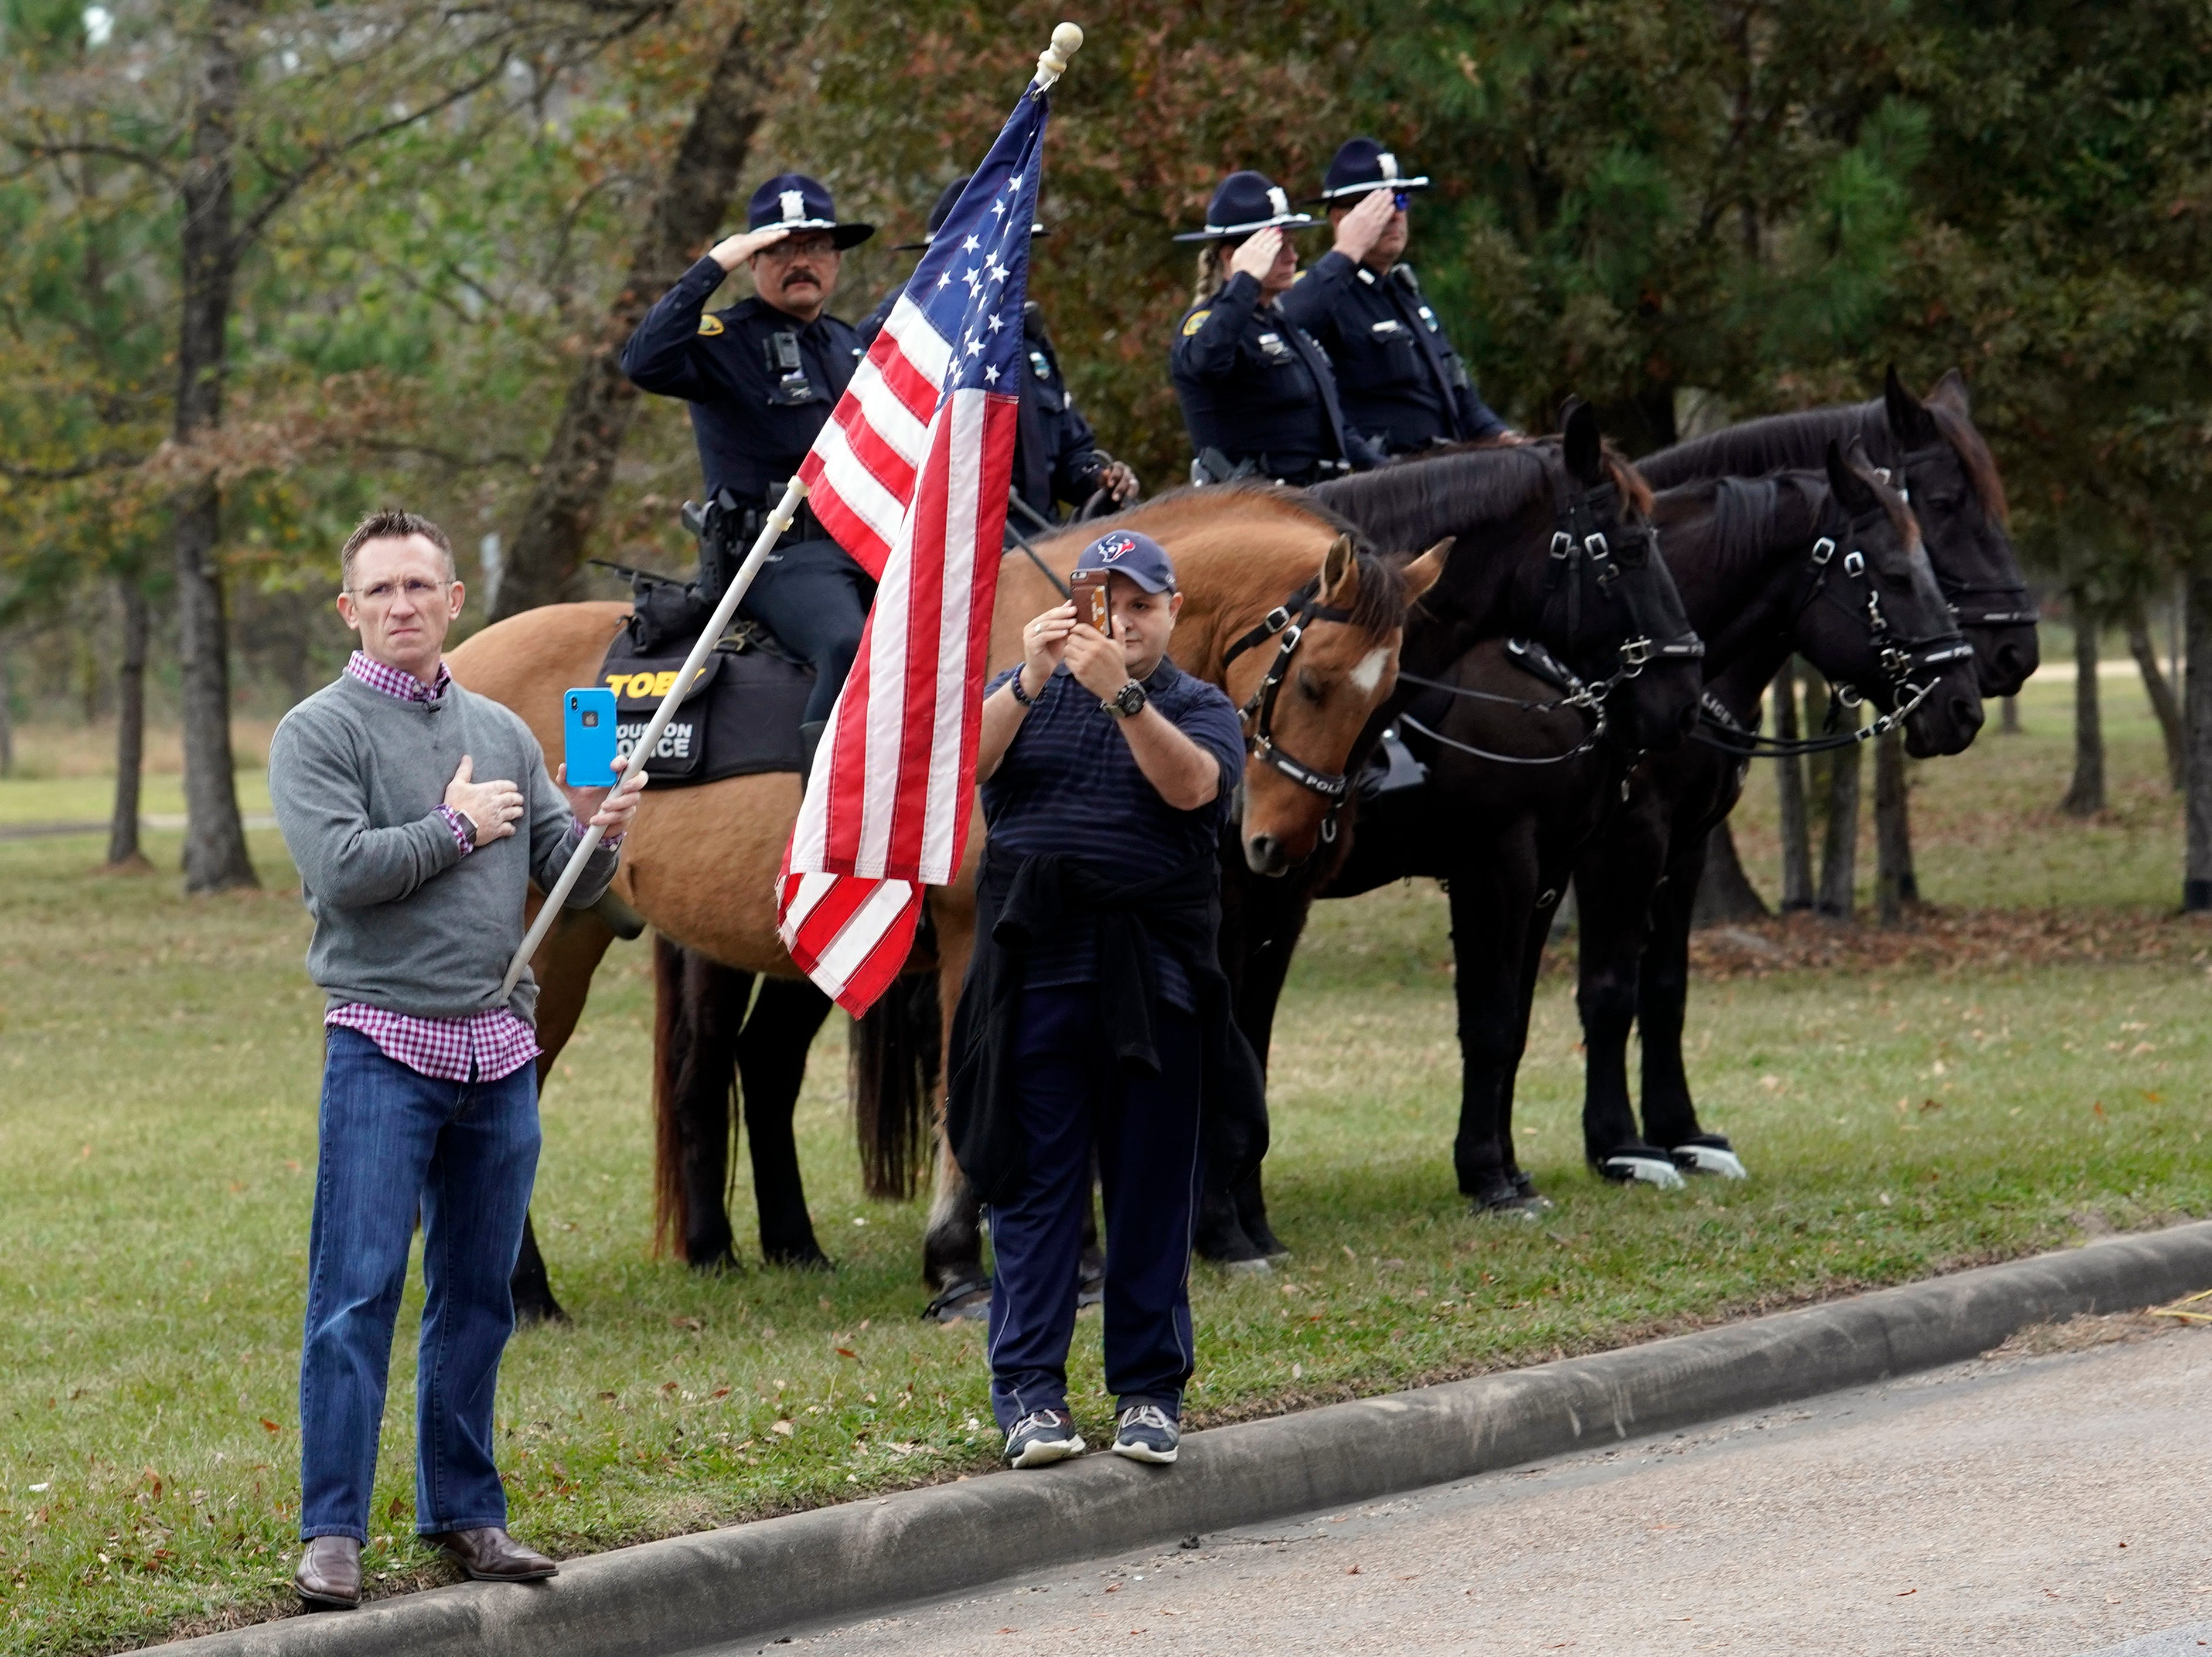 People line the road as the hearse carrying the flag-draped casket of former President George H.W. Bush heads to the Union Pacific train facility on Dec. 6, 2018 in Houston, Texas.